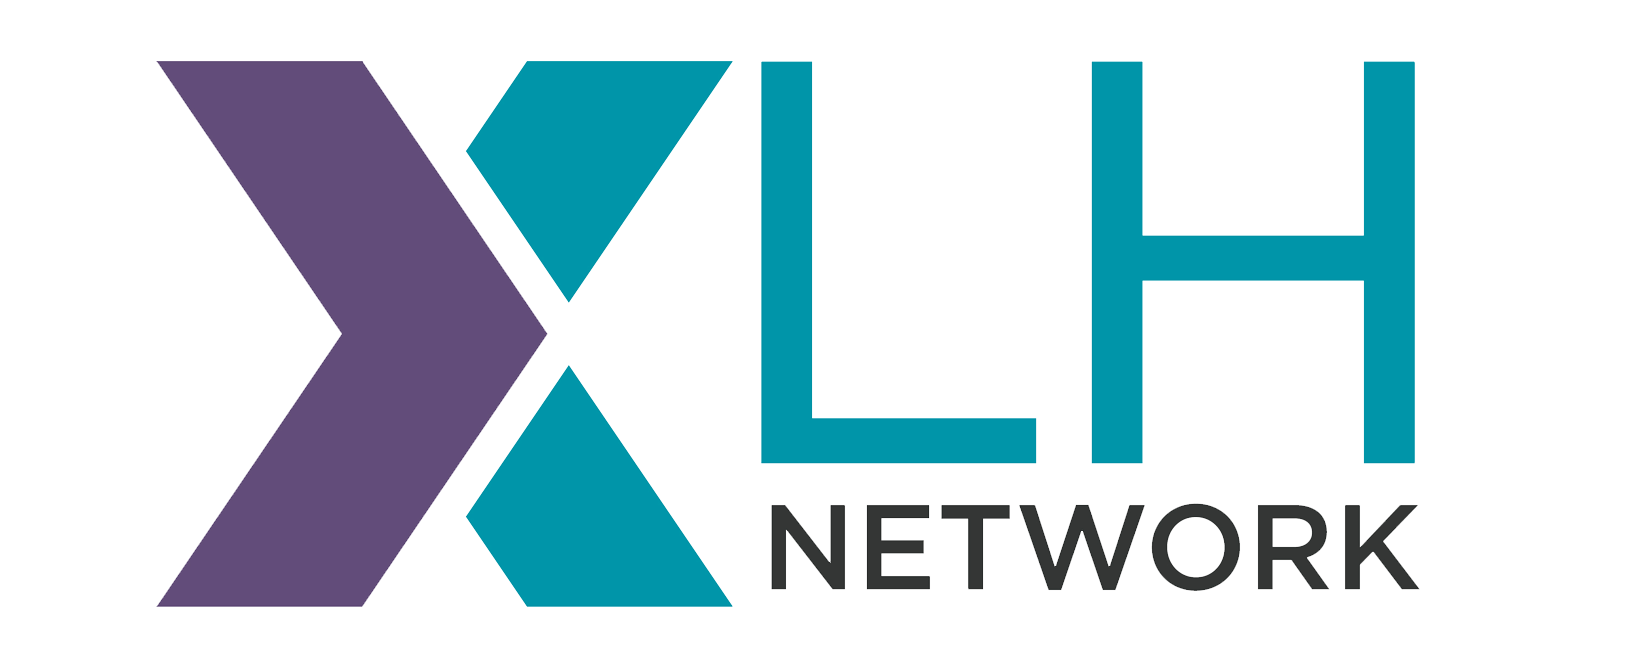 XLHNetwork.org is an organization that supports people with XLH